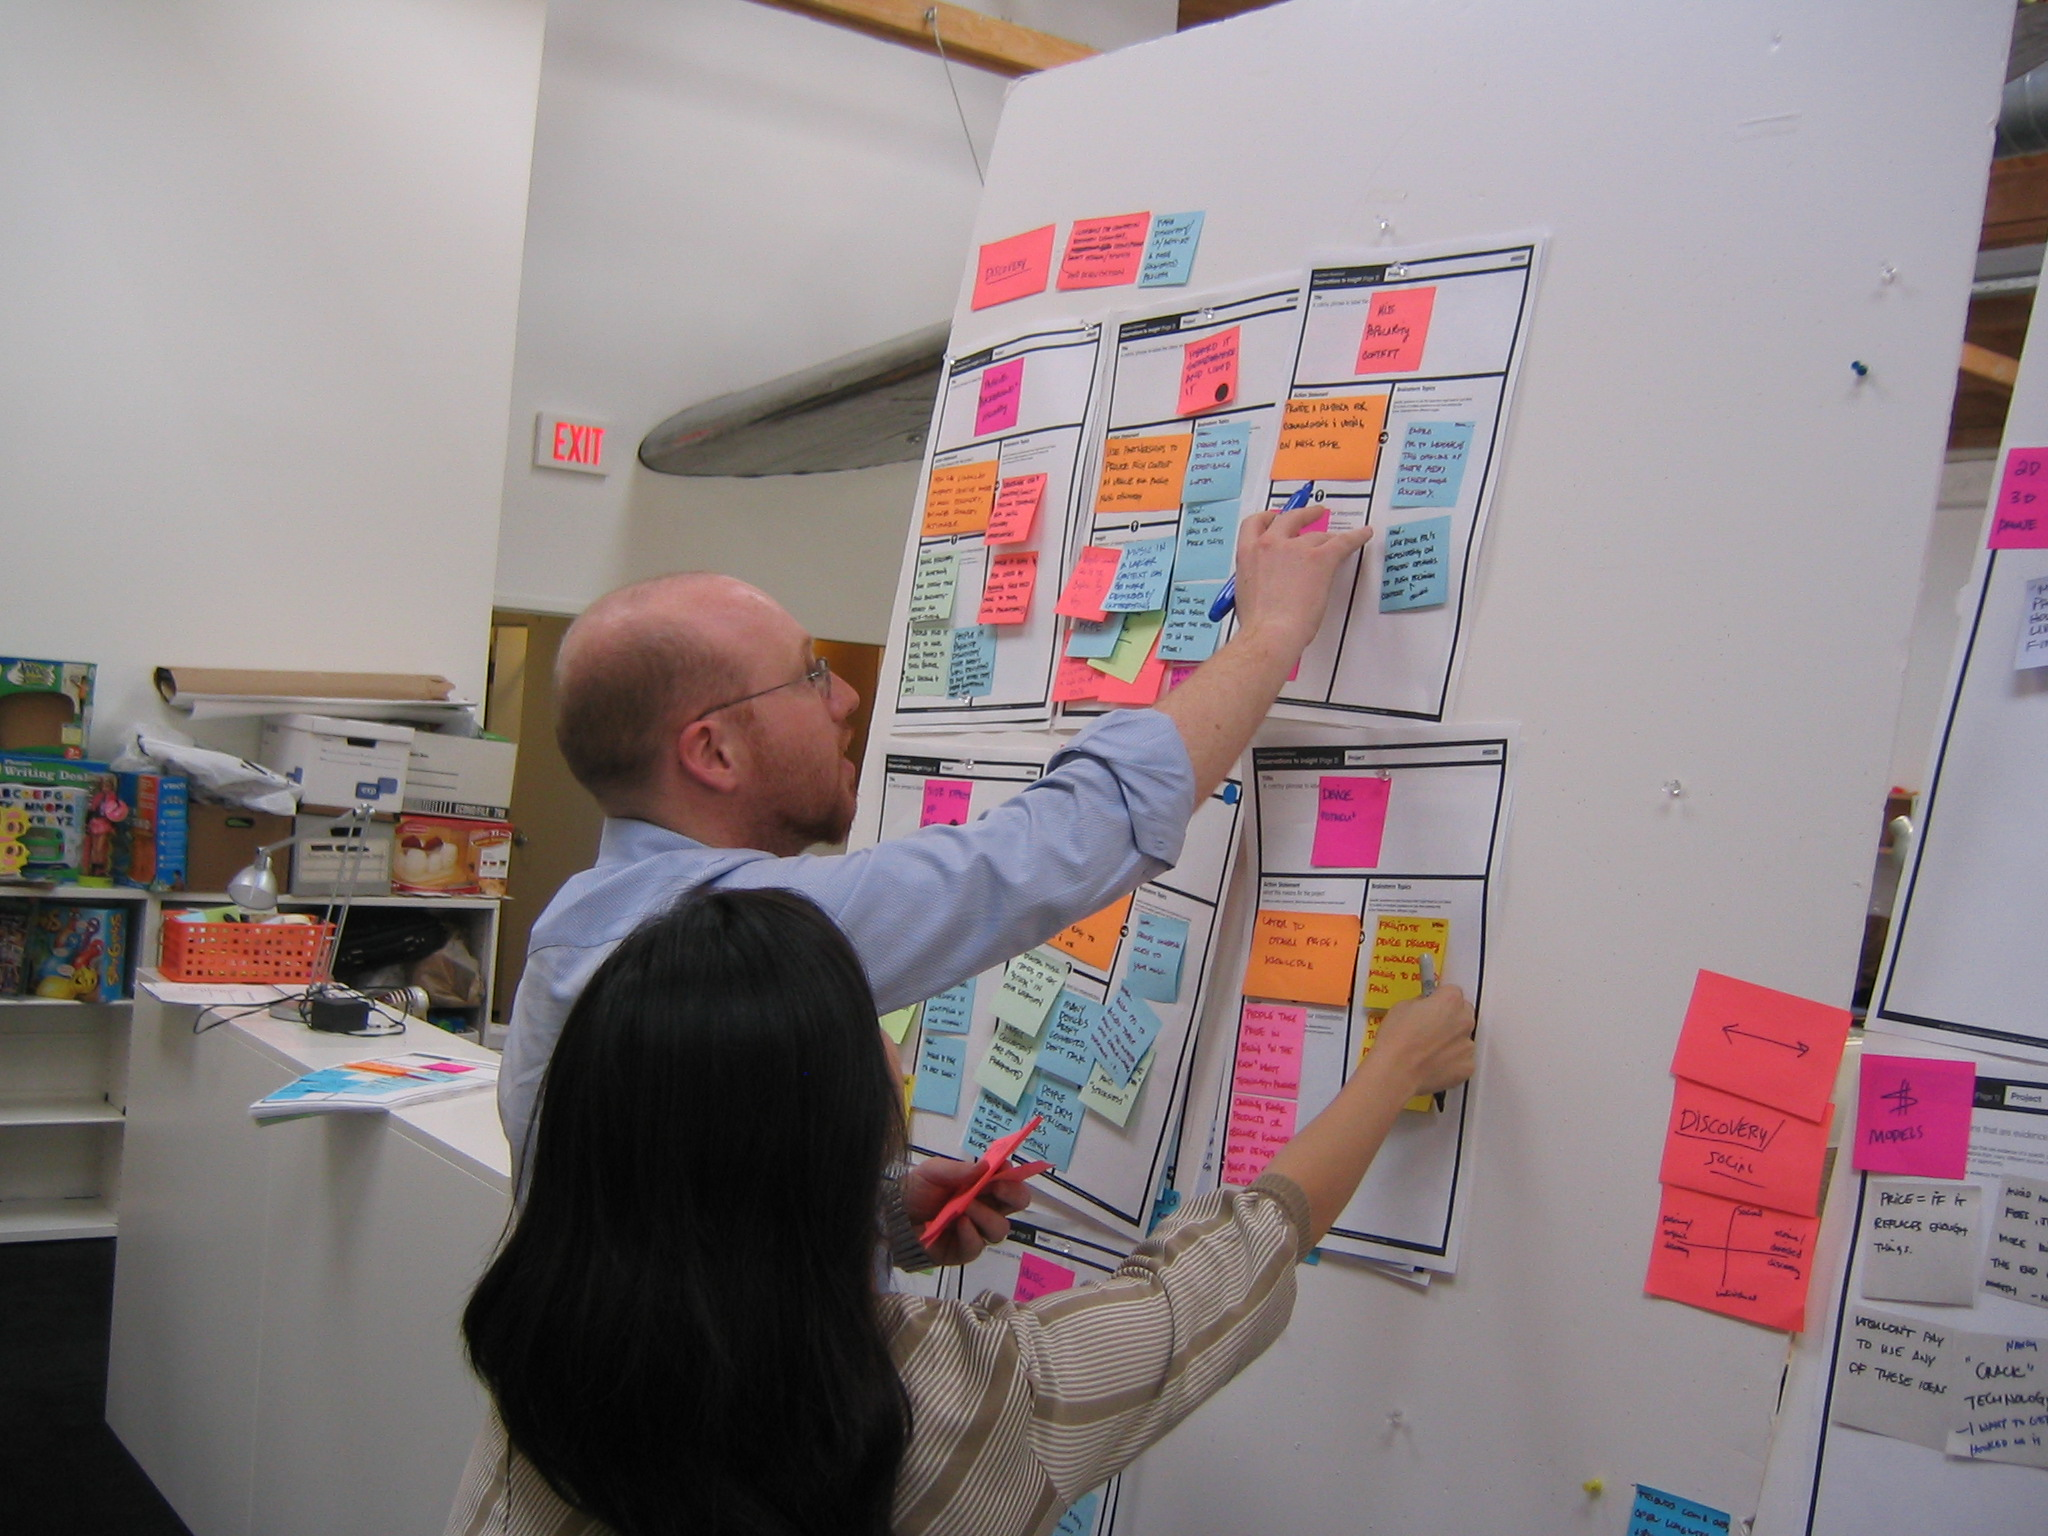 Teams use the worksheets to structure the information they generate during innovation projects.